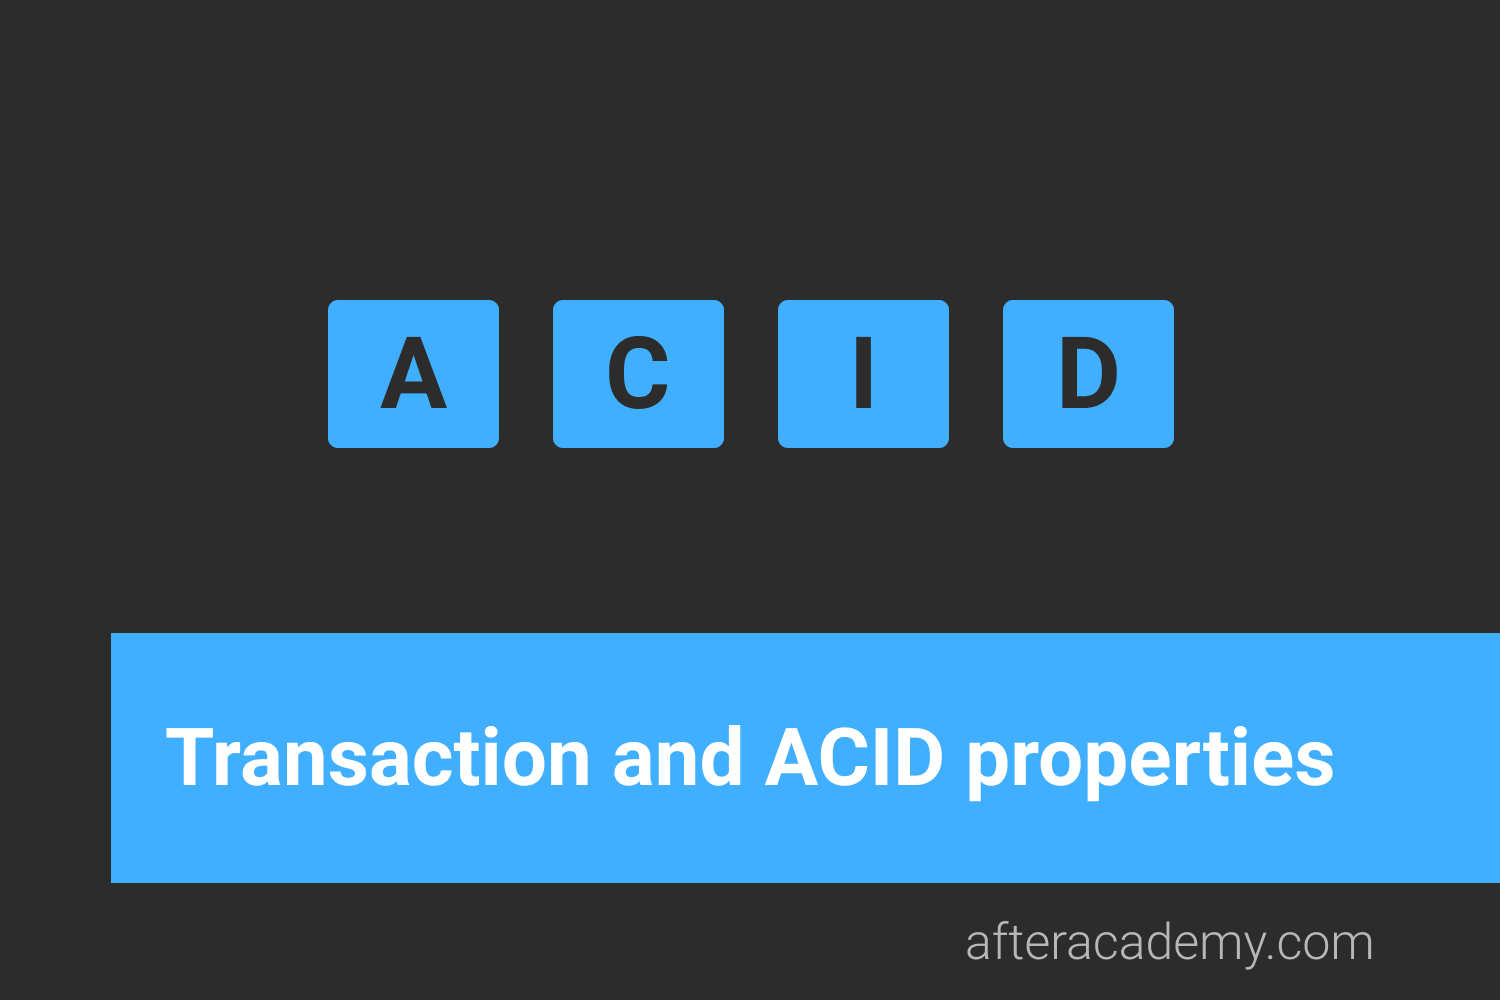 What is a transaction? What are ACID properties?